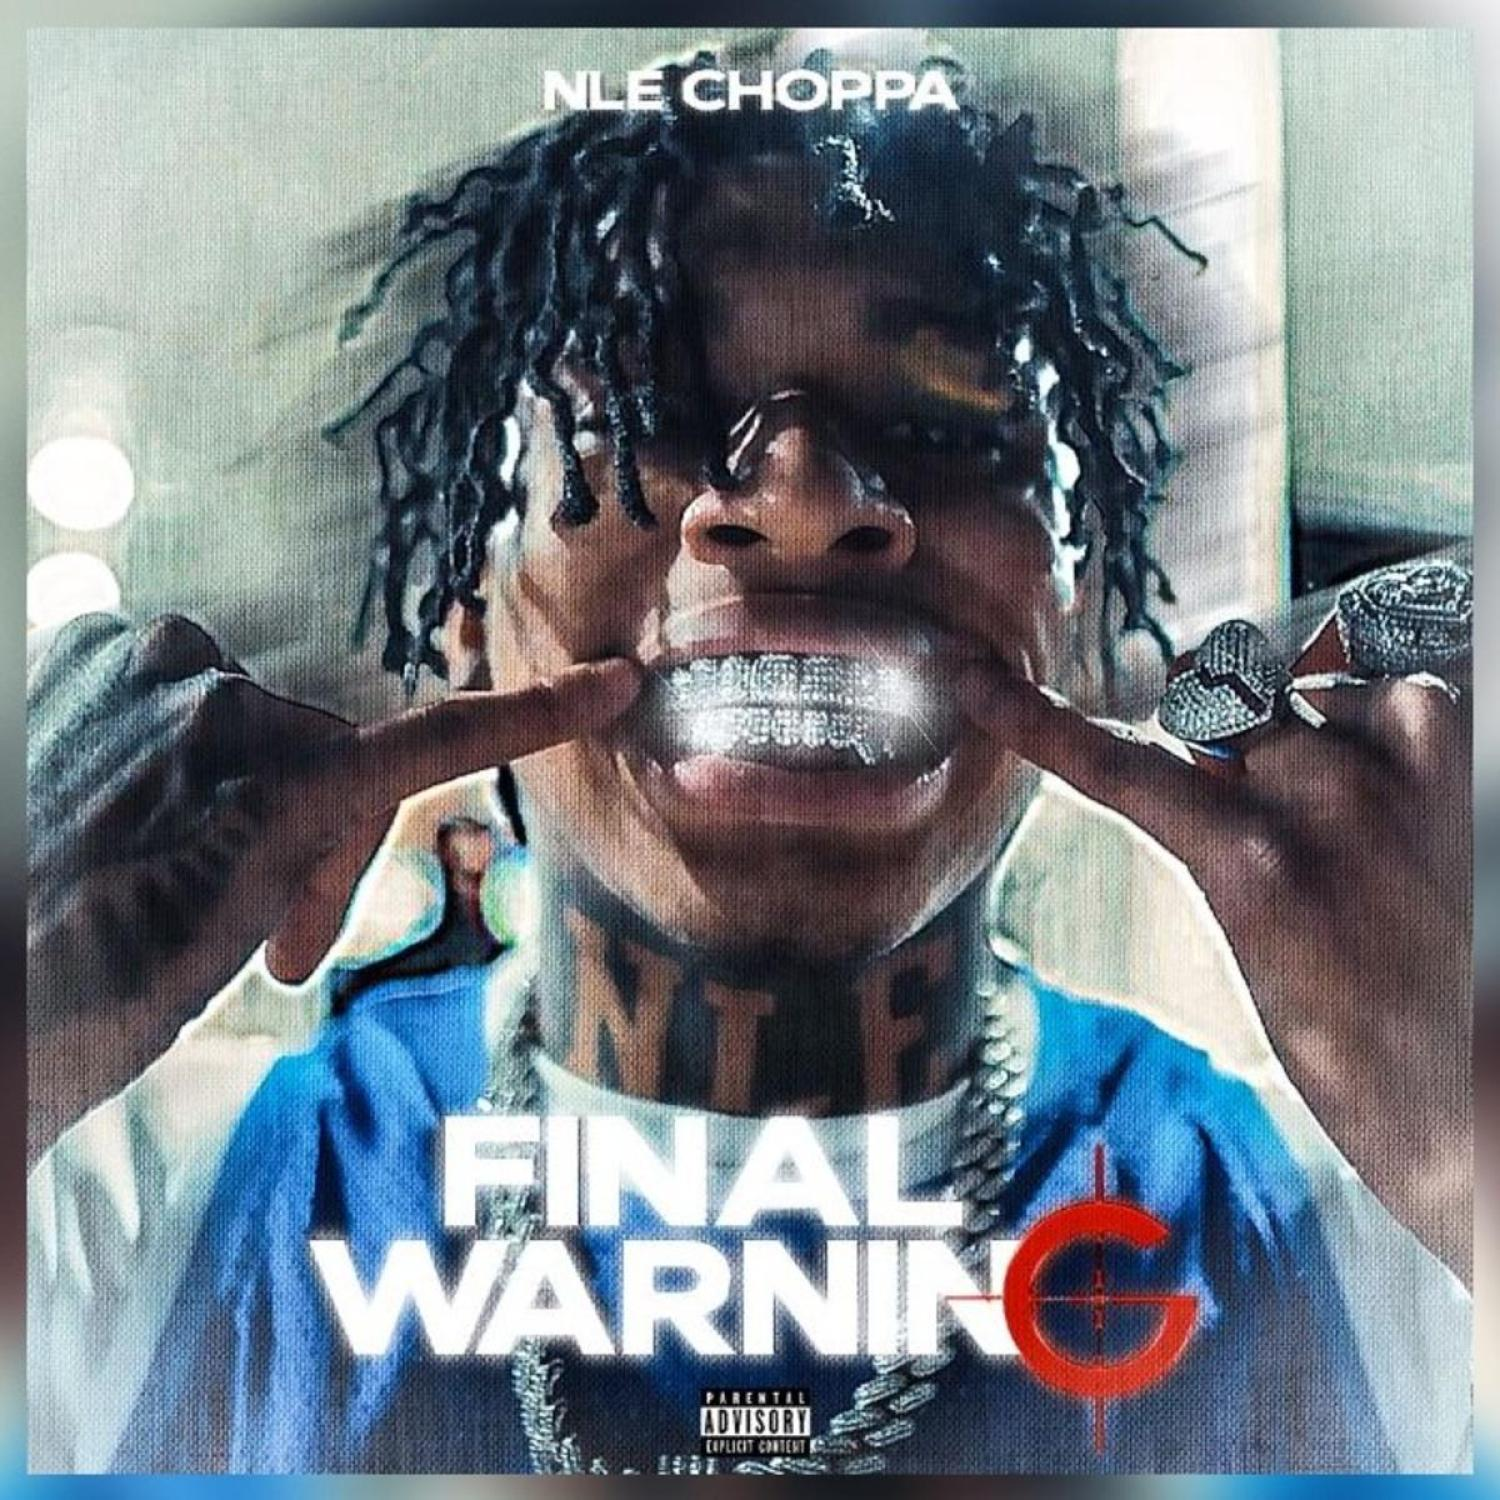 DOWNLOAD MP3: NLE Choppa – Final Warning AUDIO 320kbps